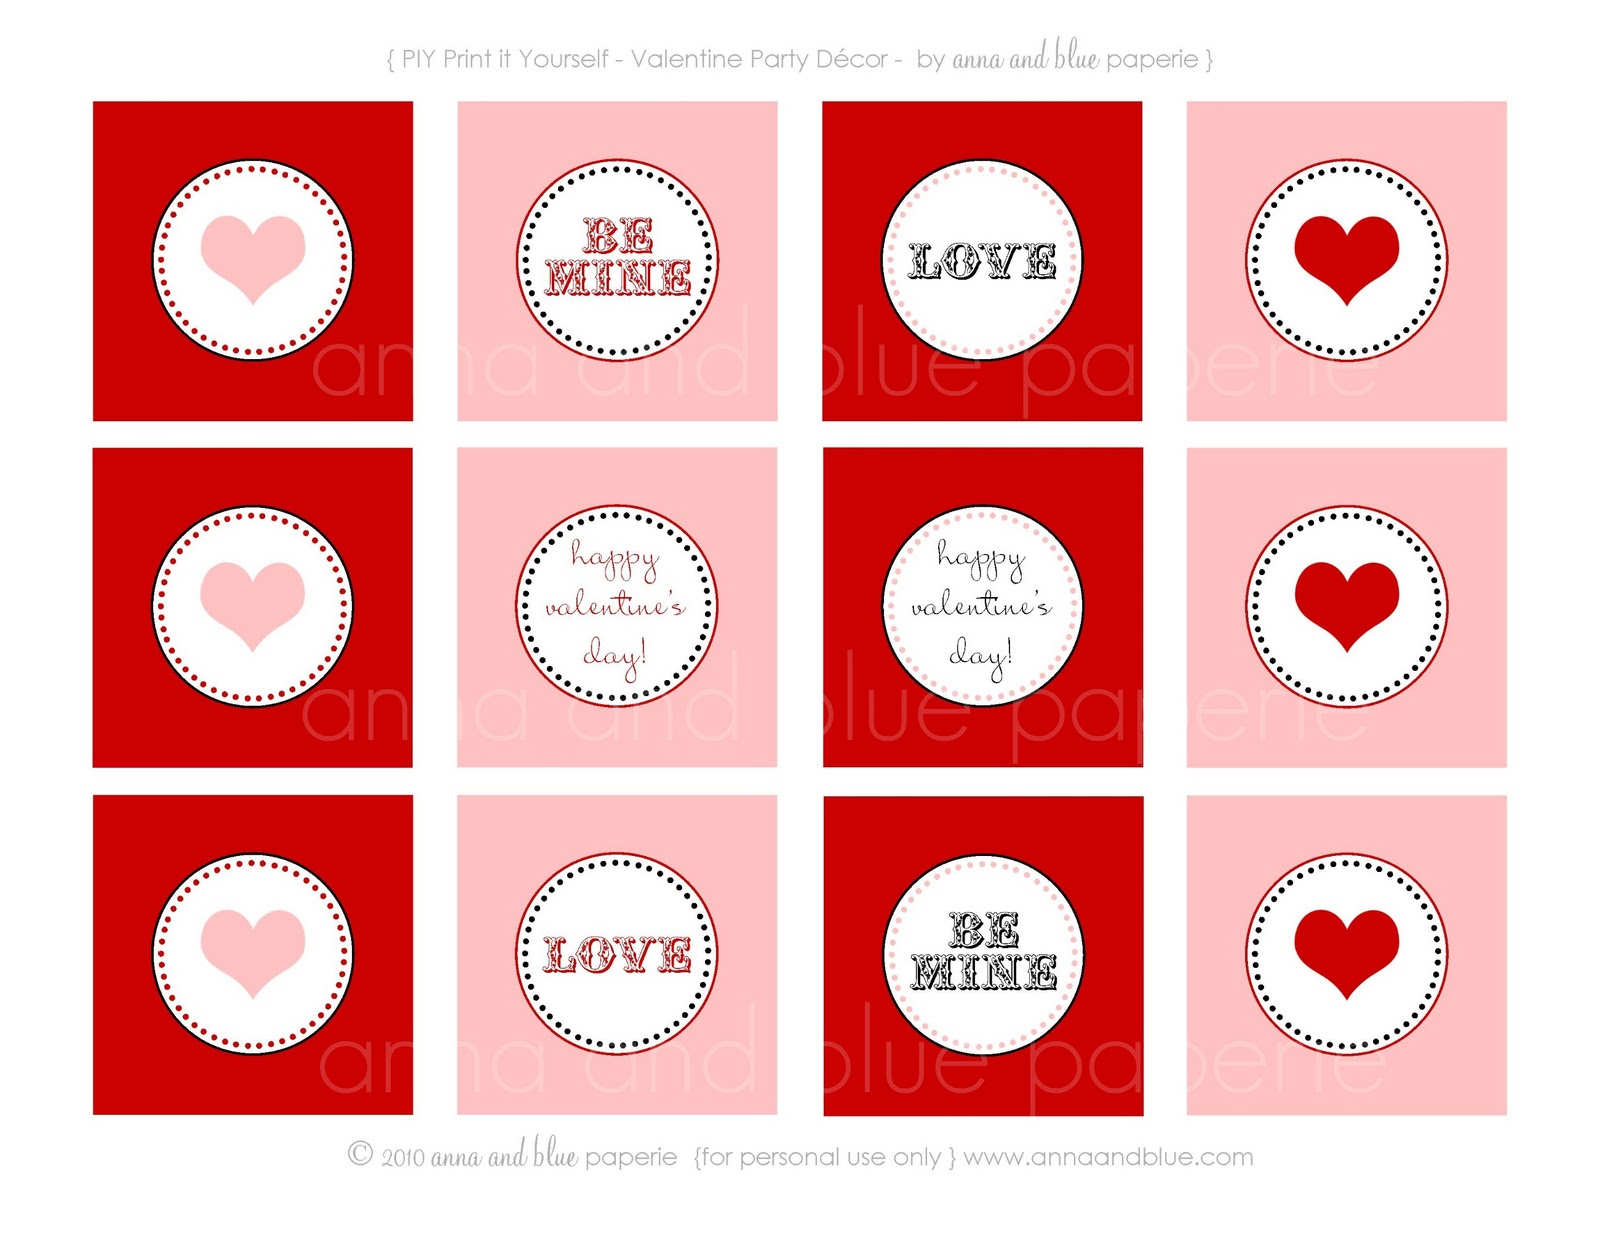 Anna And Blue Paperie Free Printable I Heart You Valentine S Day Party Decor